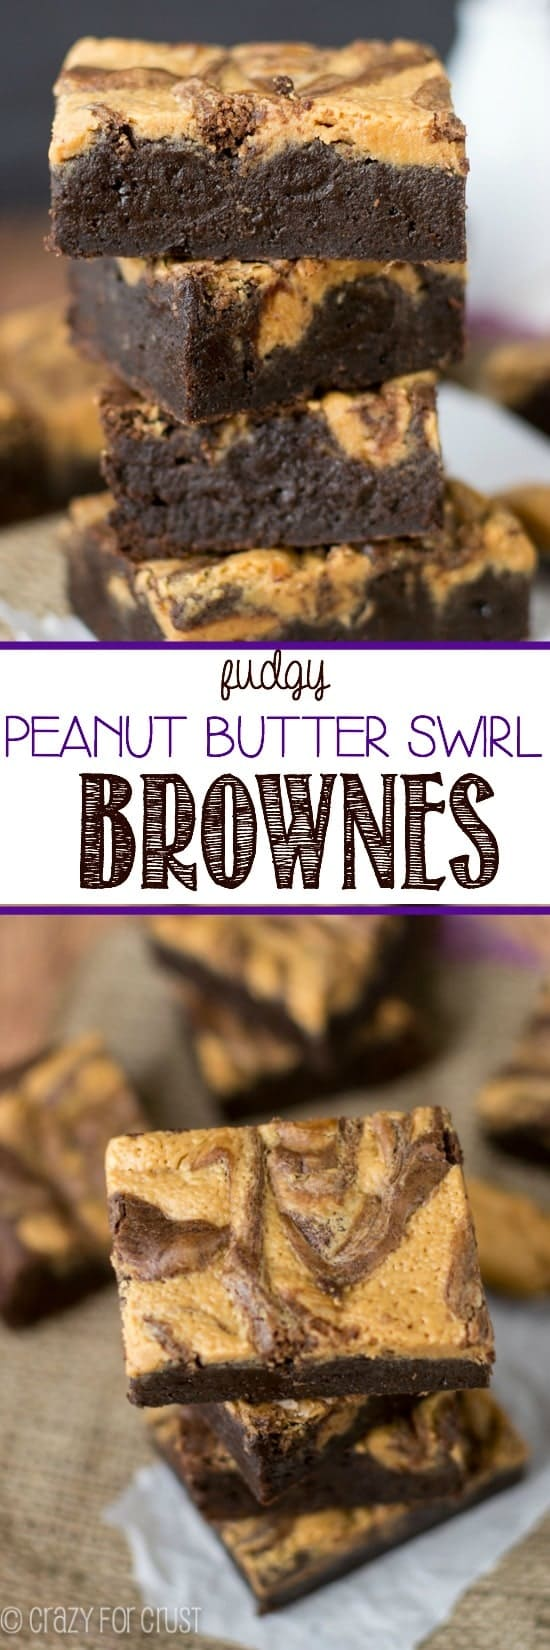 Two pic collage of Fudgy Peanut Butter Swirl Brownies